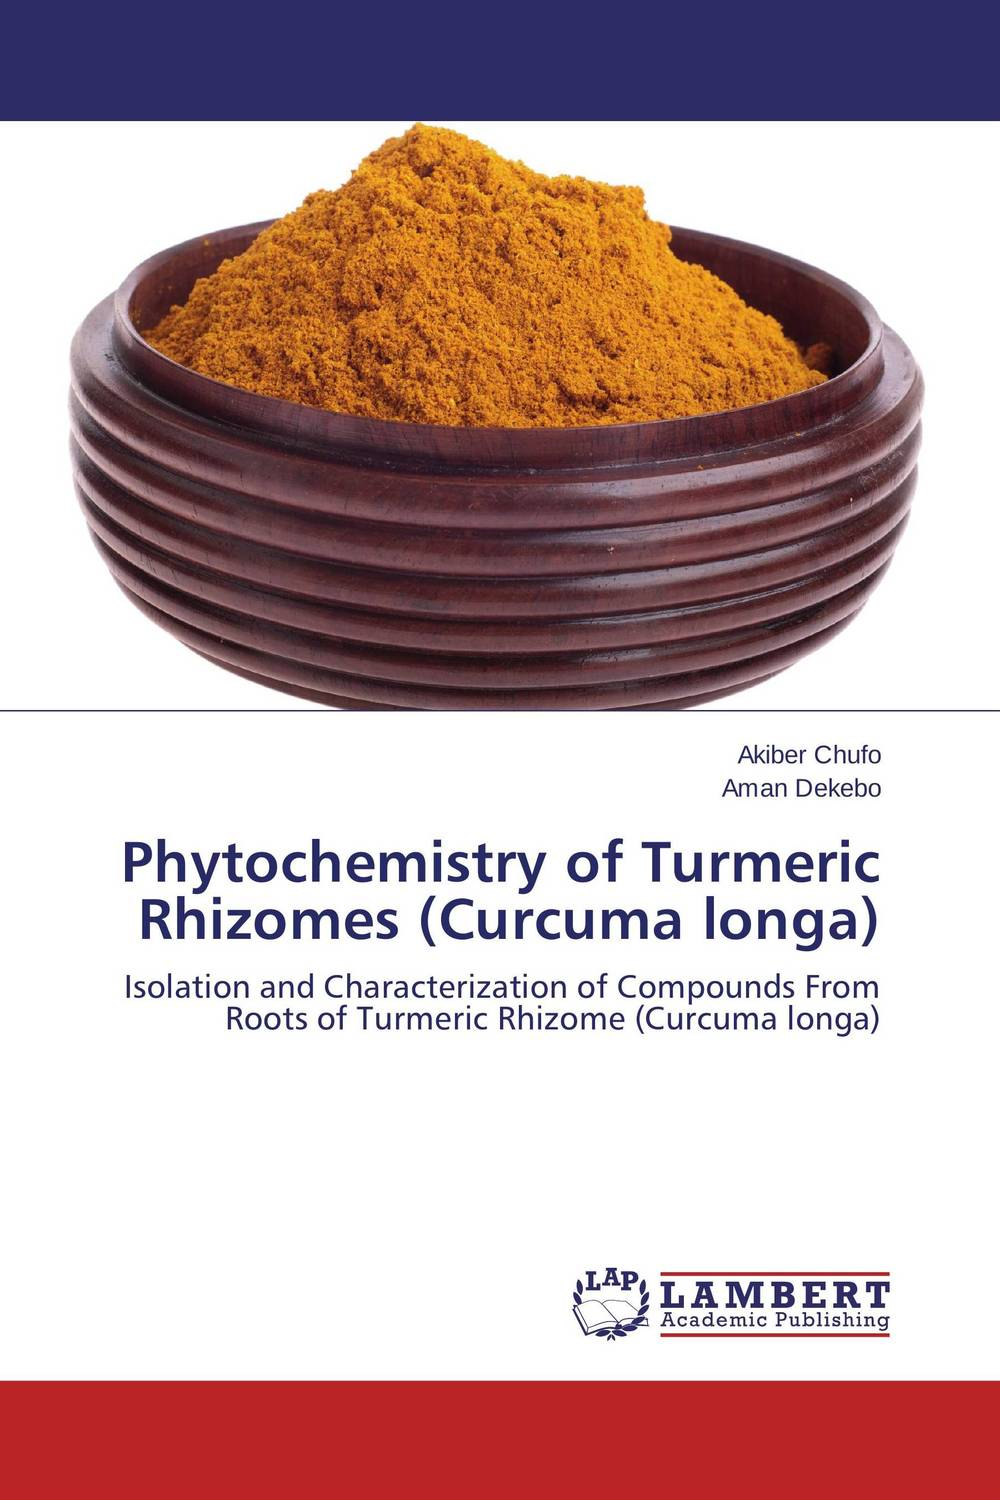 Phytochemistry of Turmeric Rhizomes (Curcuma longa) laxman sawant bala prabhakar and nancy pandita phytochemistry and bioactivity of enicostemma littorale